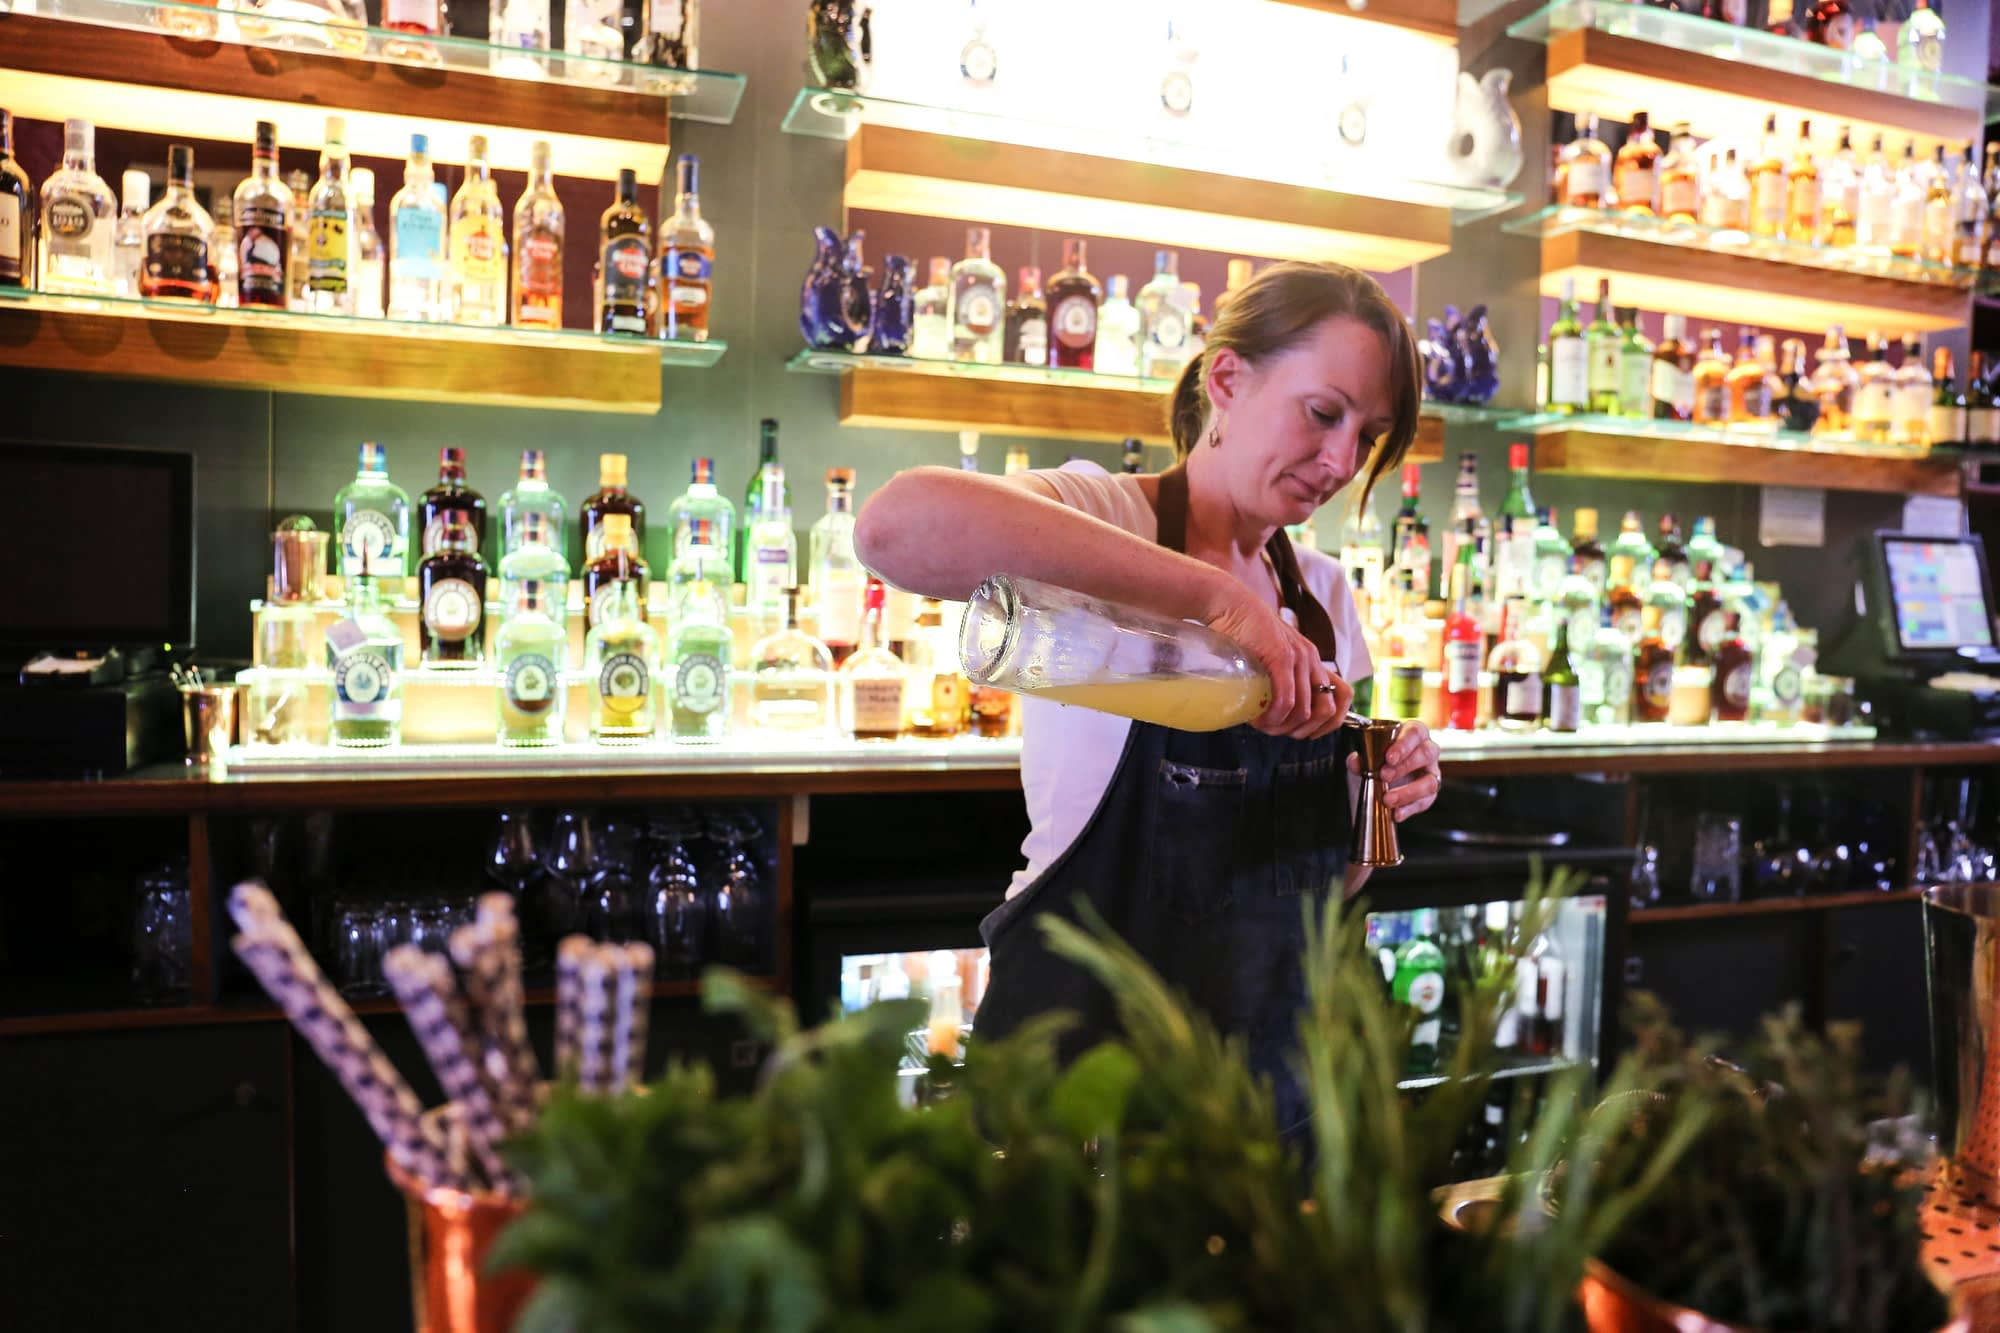 Leanne cocktail making